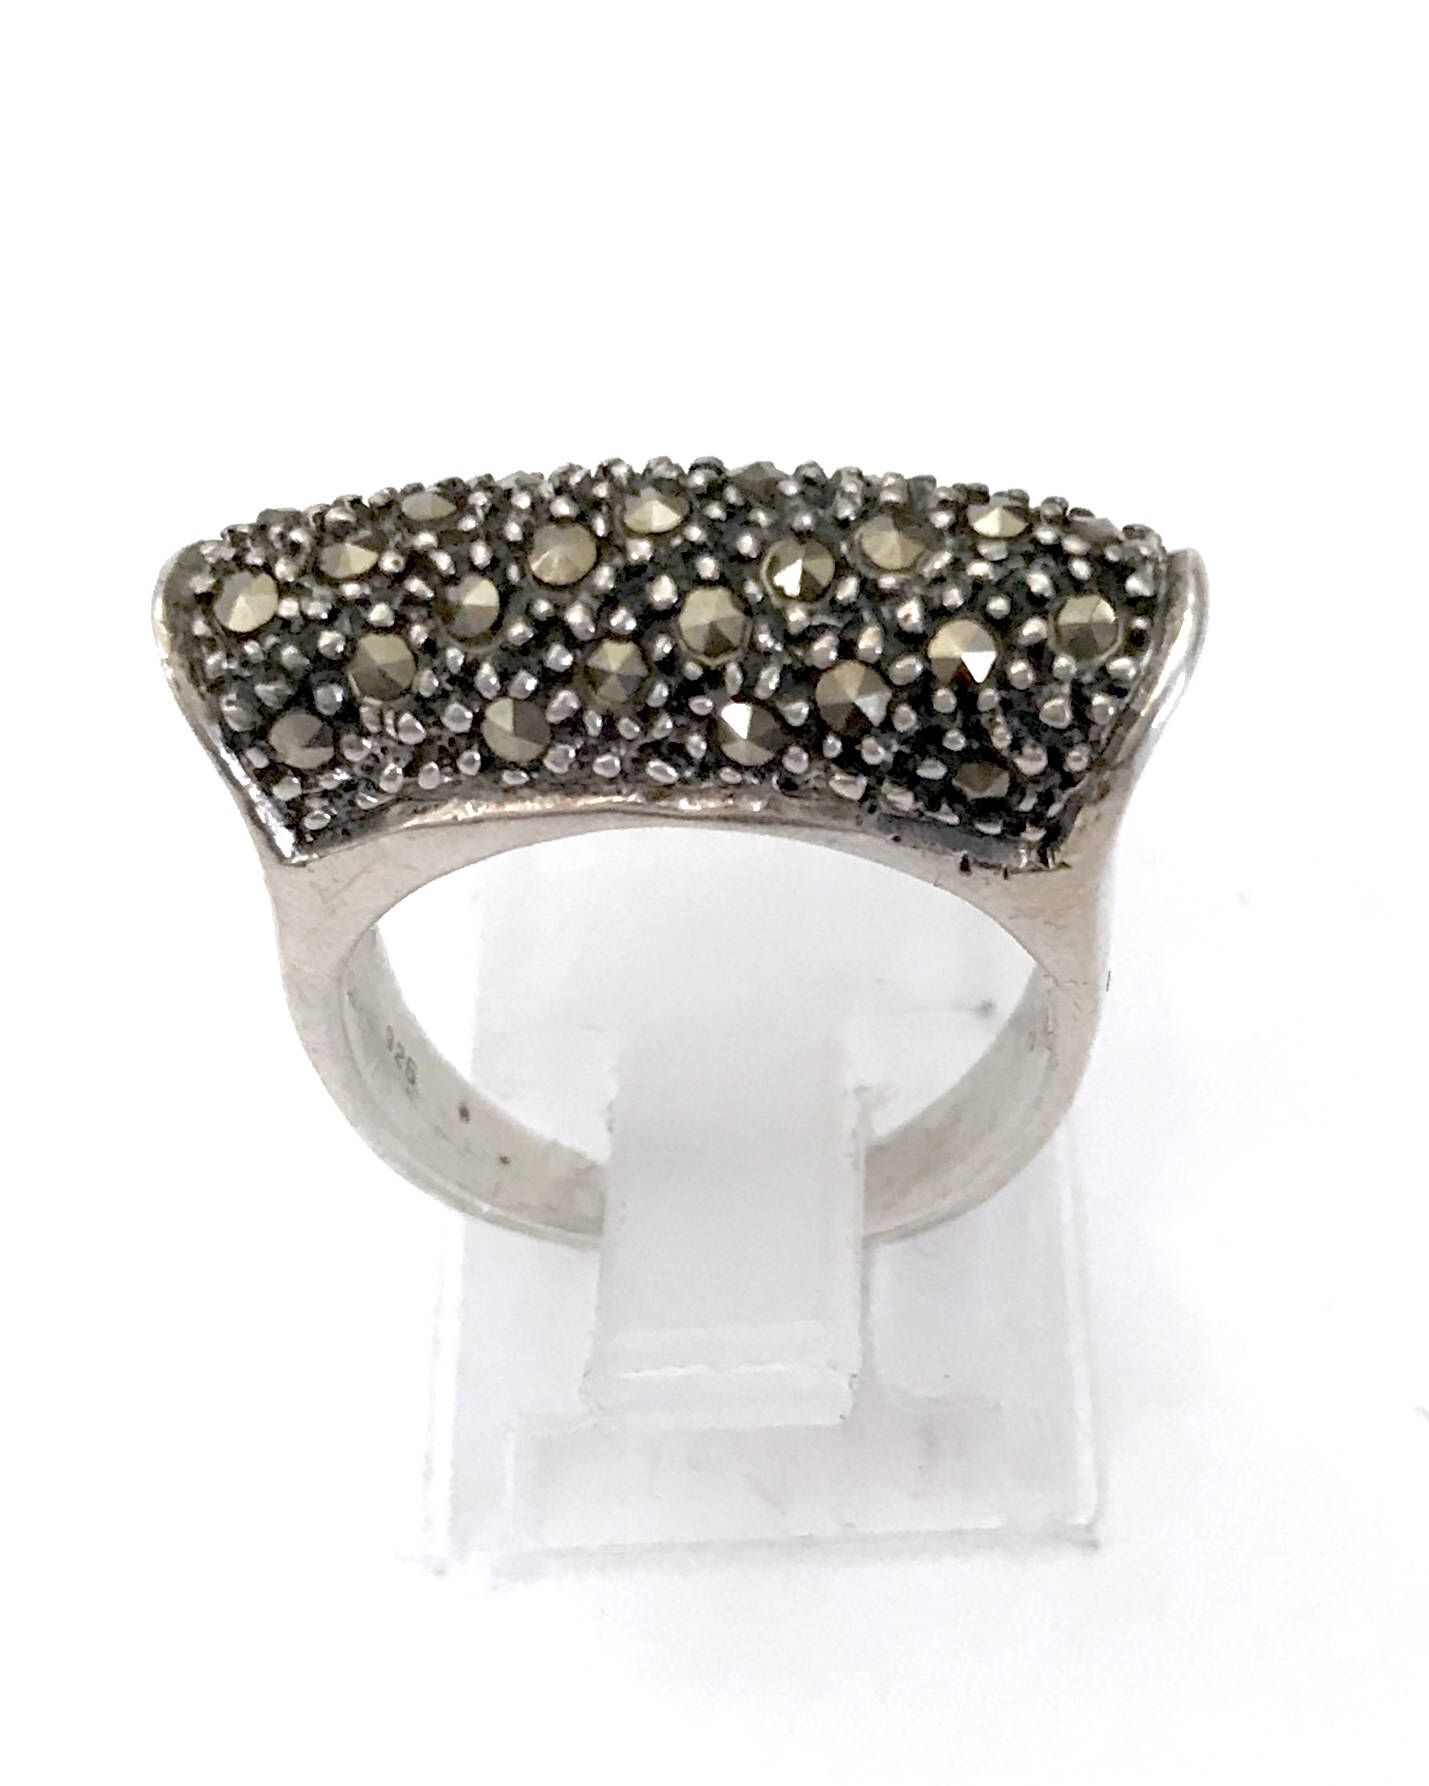 864bc06e9 Excited to share the latest addition to my #etsy shop: Judith Jack Sterling  Silver Marcasite Ring, Modernist Style, High Profile Marcasite Bridge, ...